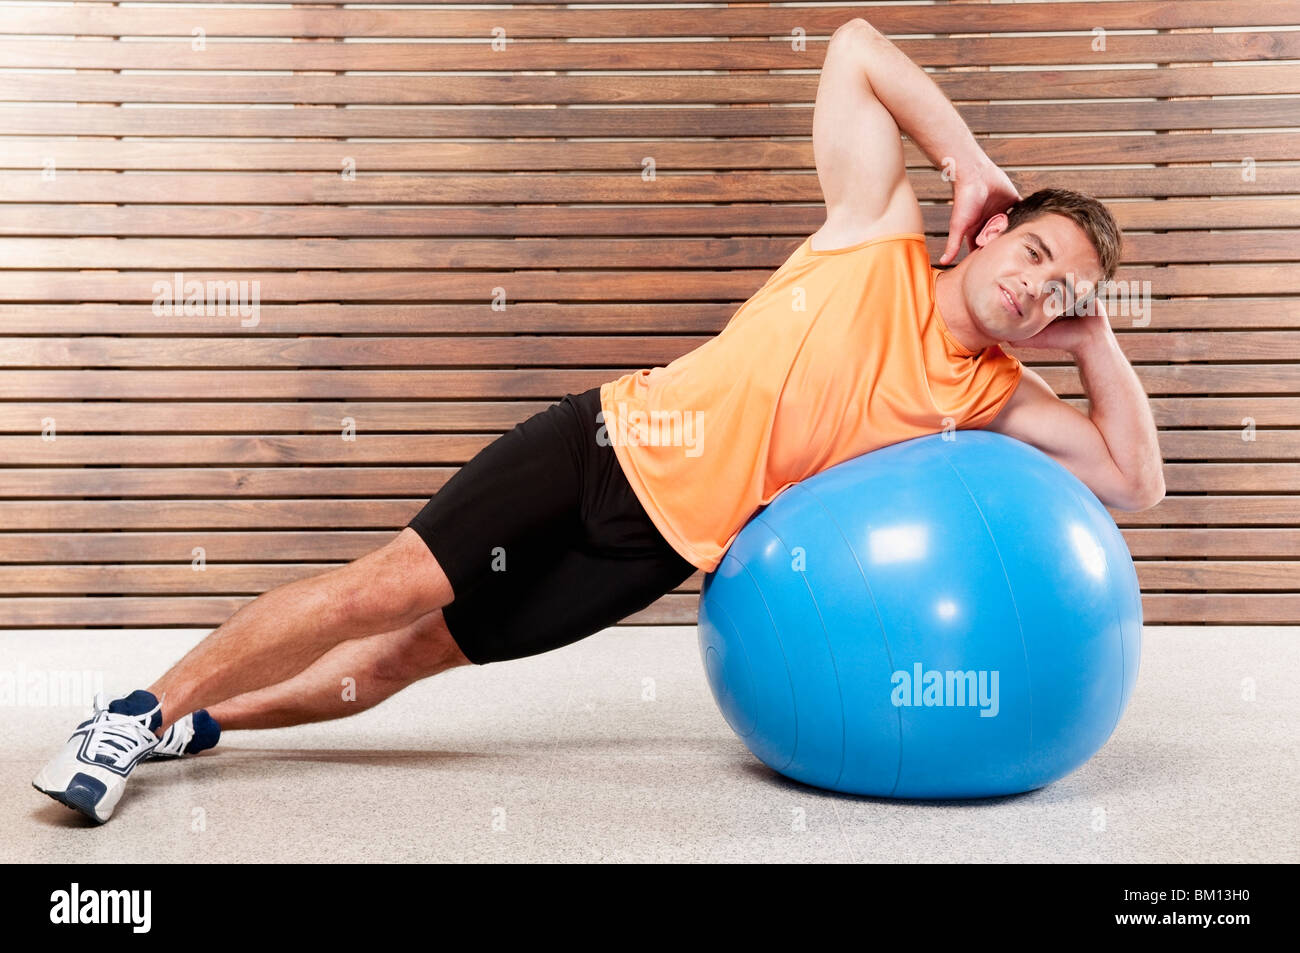 Man exercising on a fitness ball in a gym - Stock Image